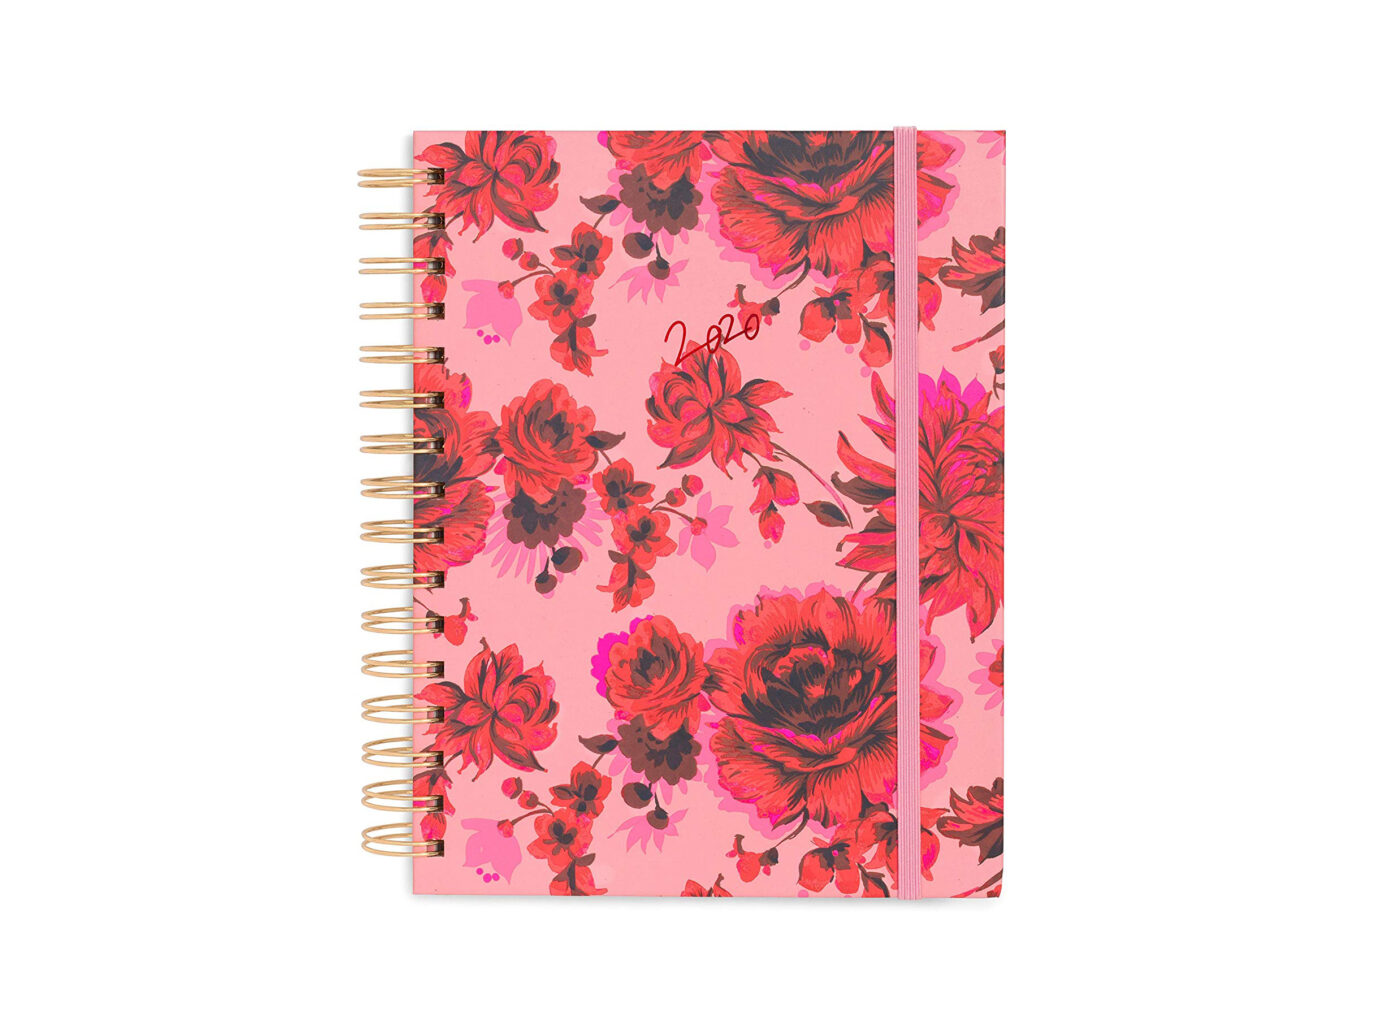 Ban.do 12-Month 2020 Planner